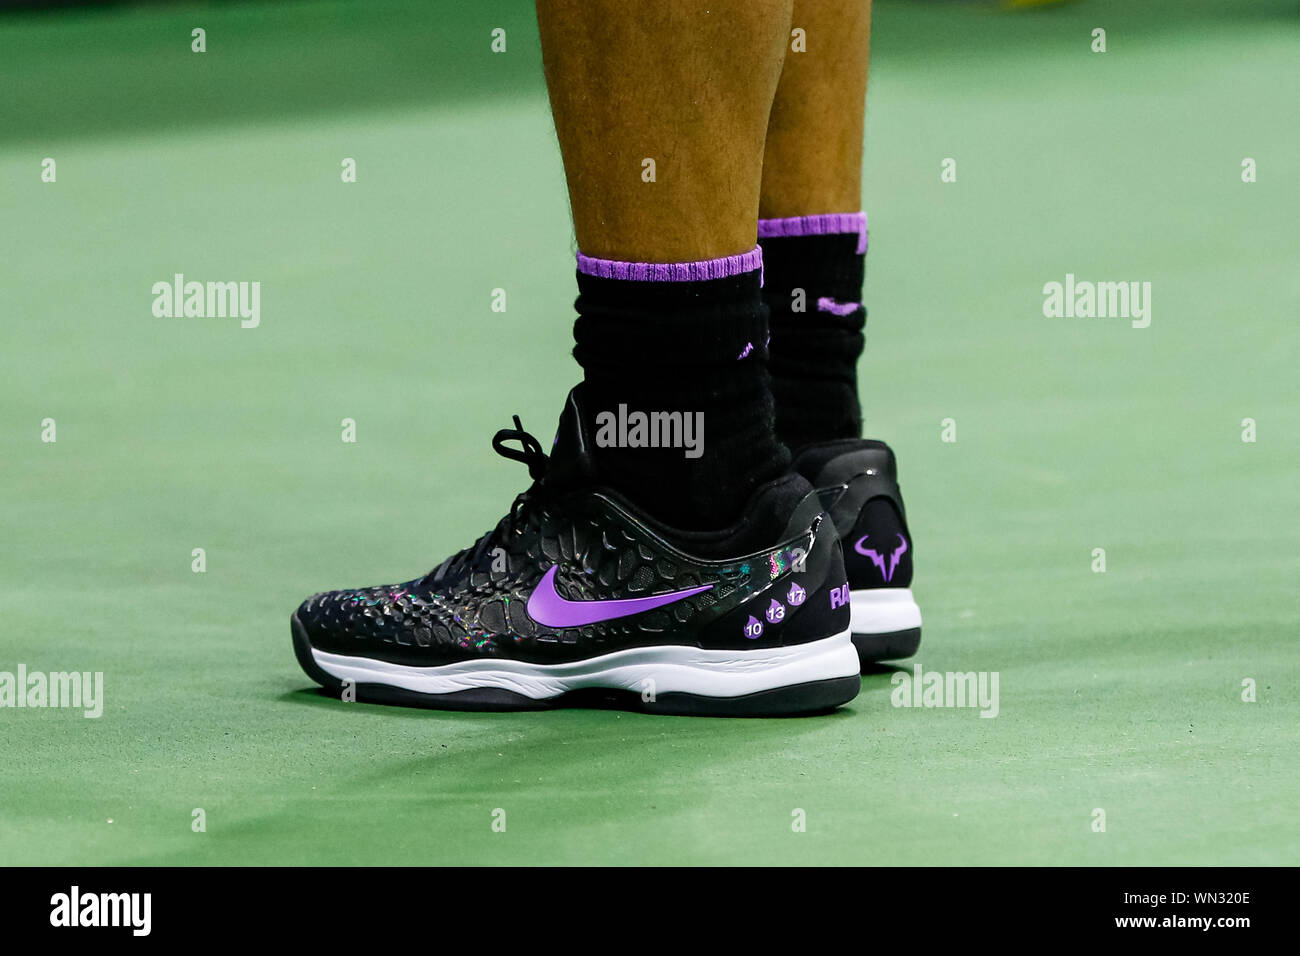 New York Usa 04th Sep 2019 Rafael Nadal S Nike Shoes During His Men S Singles Quarterfinals Match